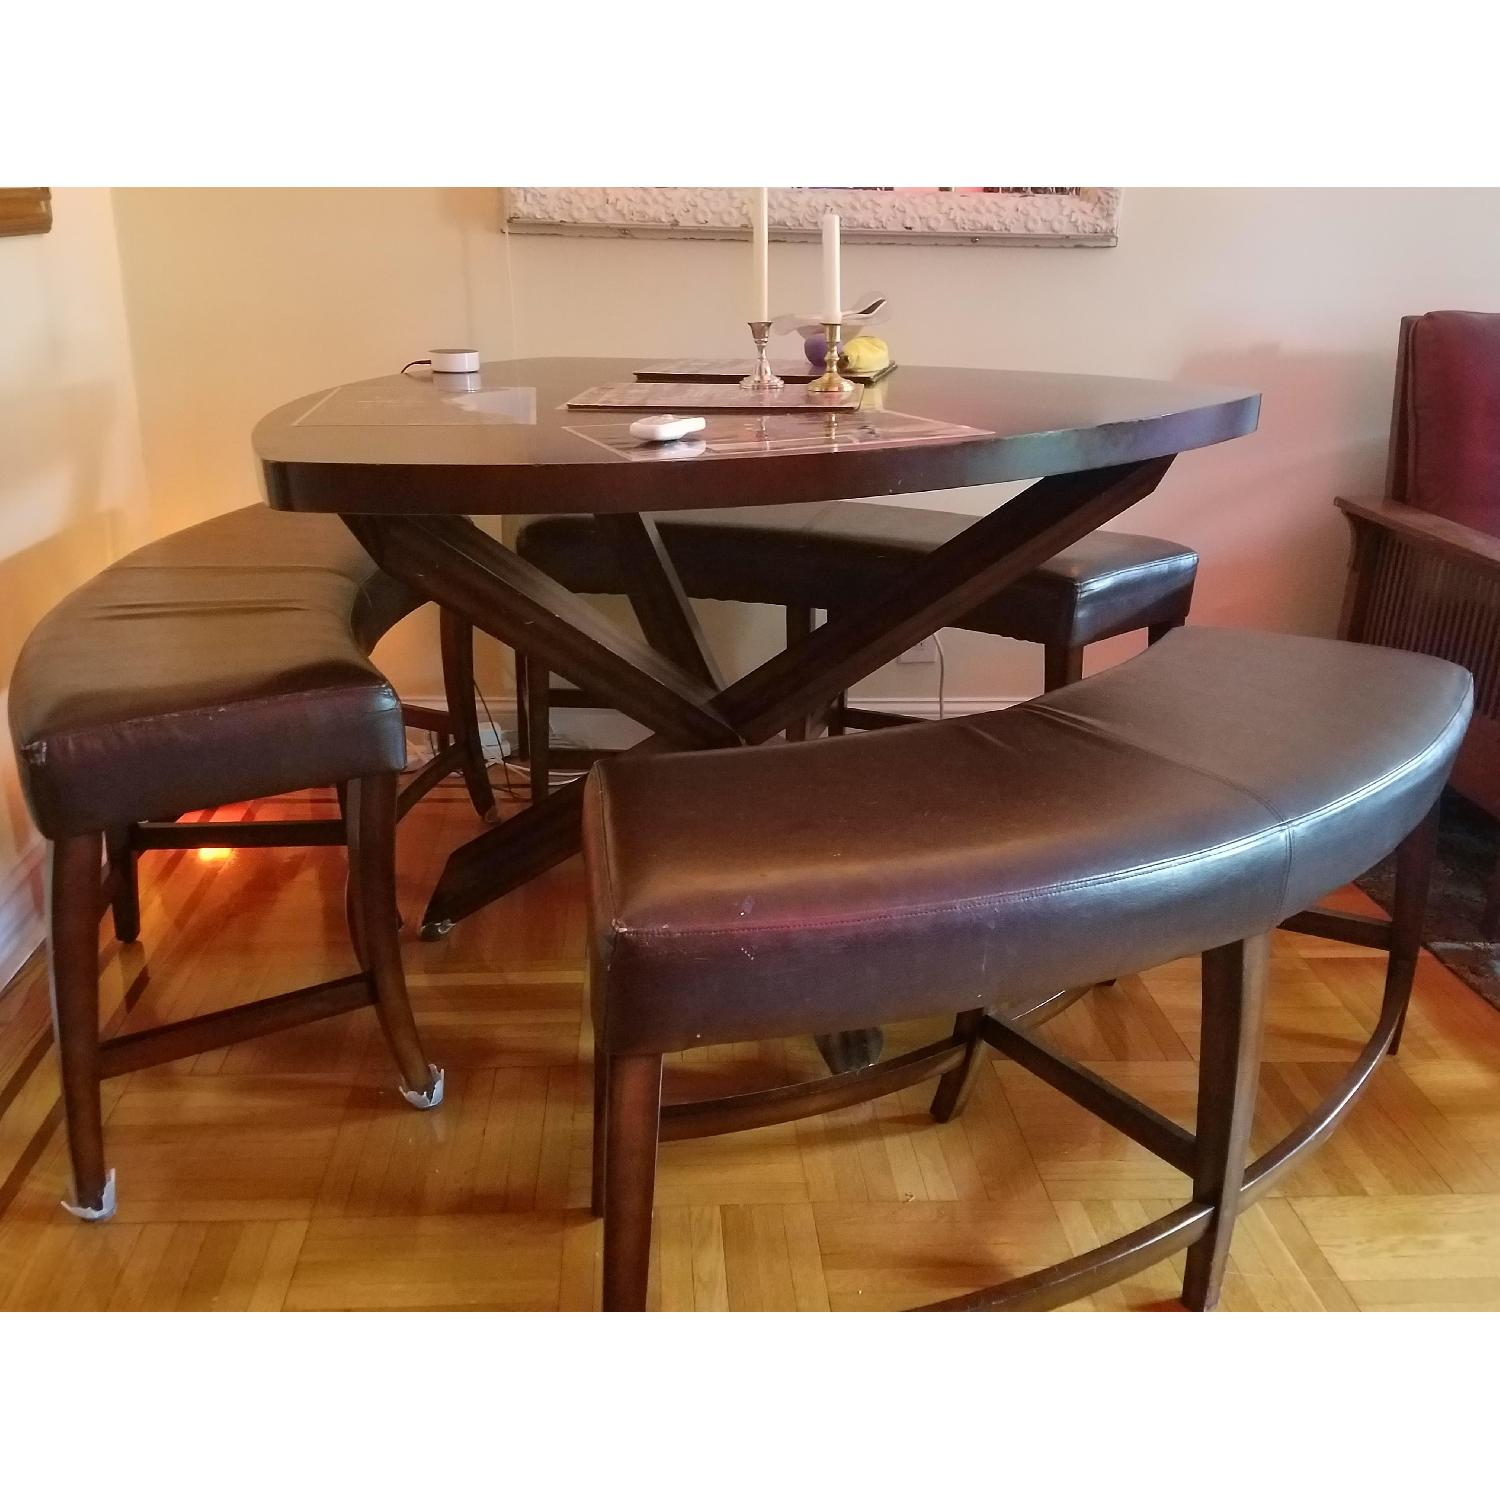 Triangle Dining Table w/ 3 Benches - image-3